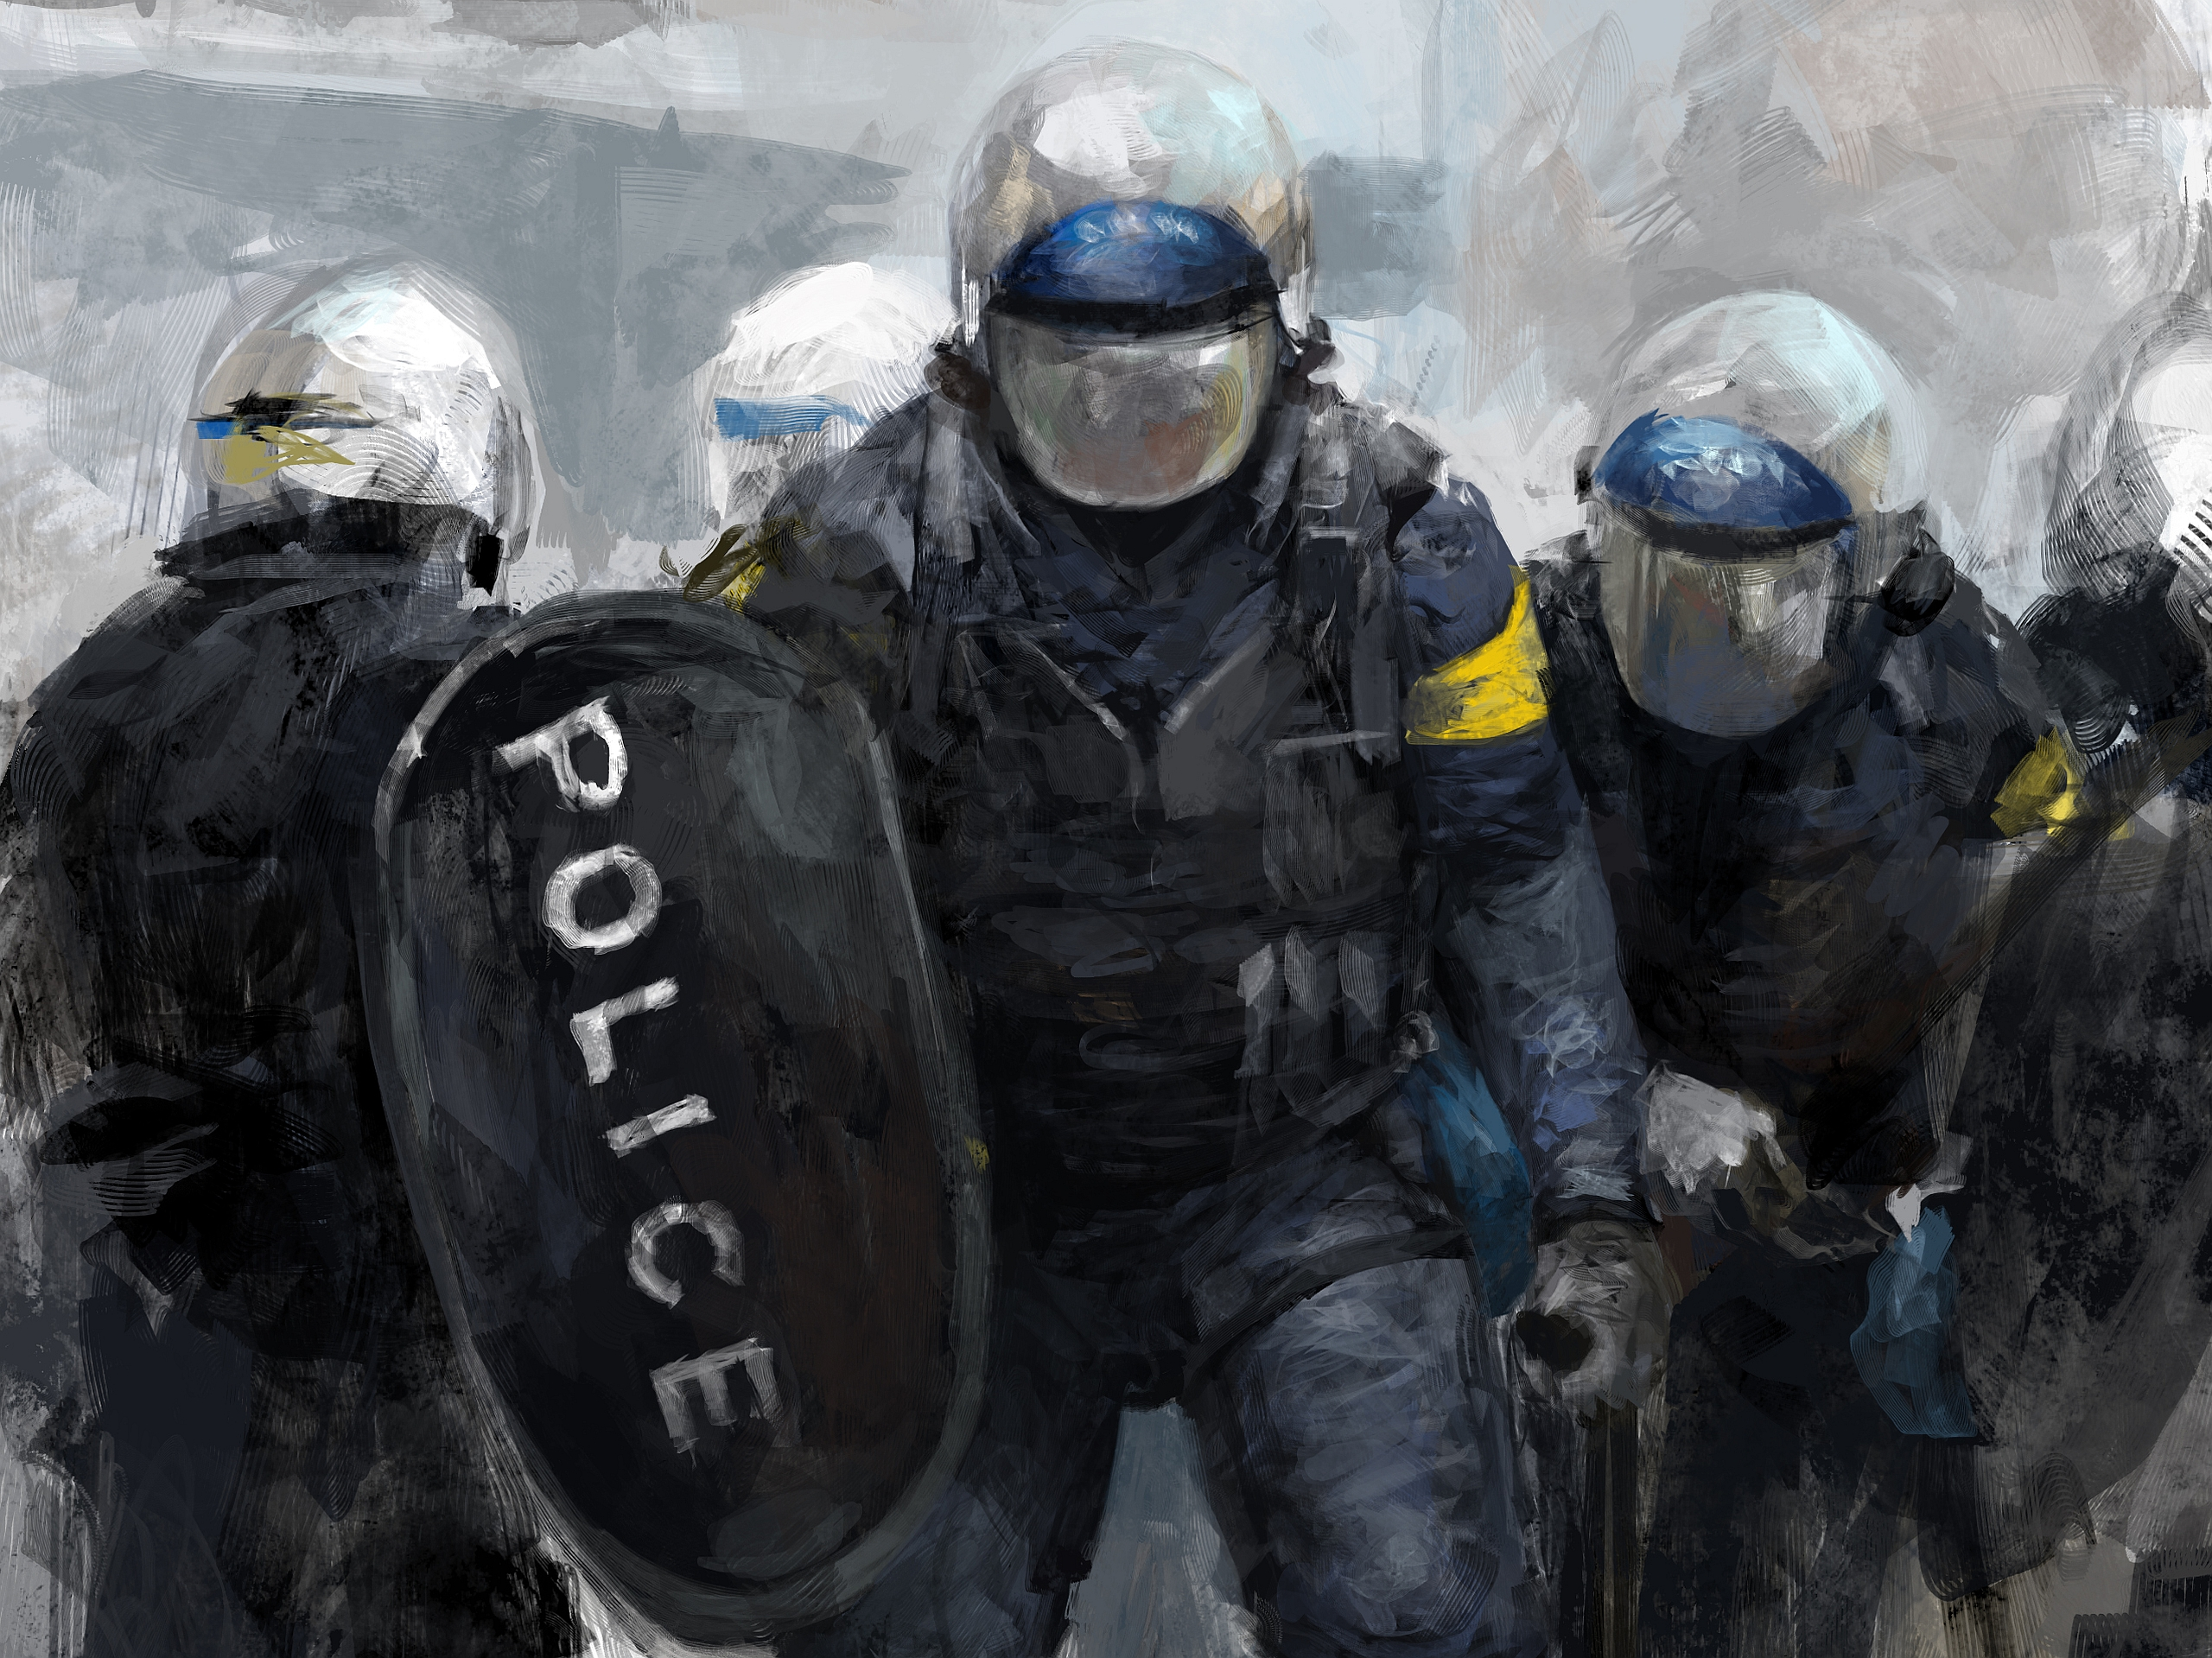 Police Computer Wallpapers Desktop Backgrounds 2560x1919 Id 374476 2560x1919